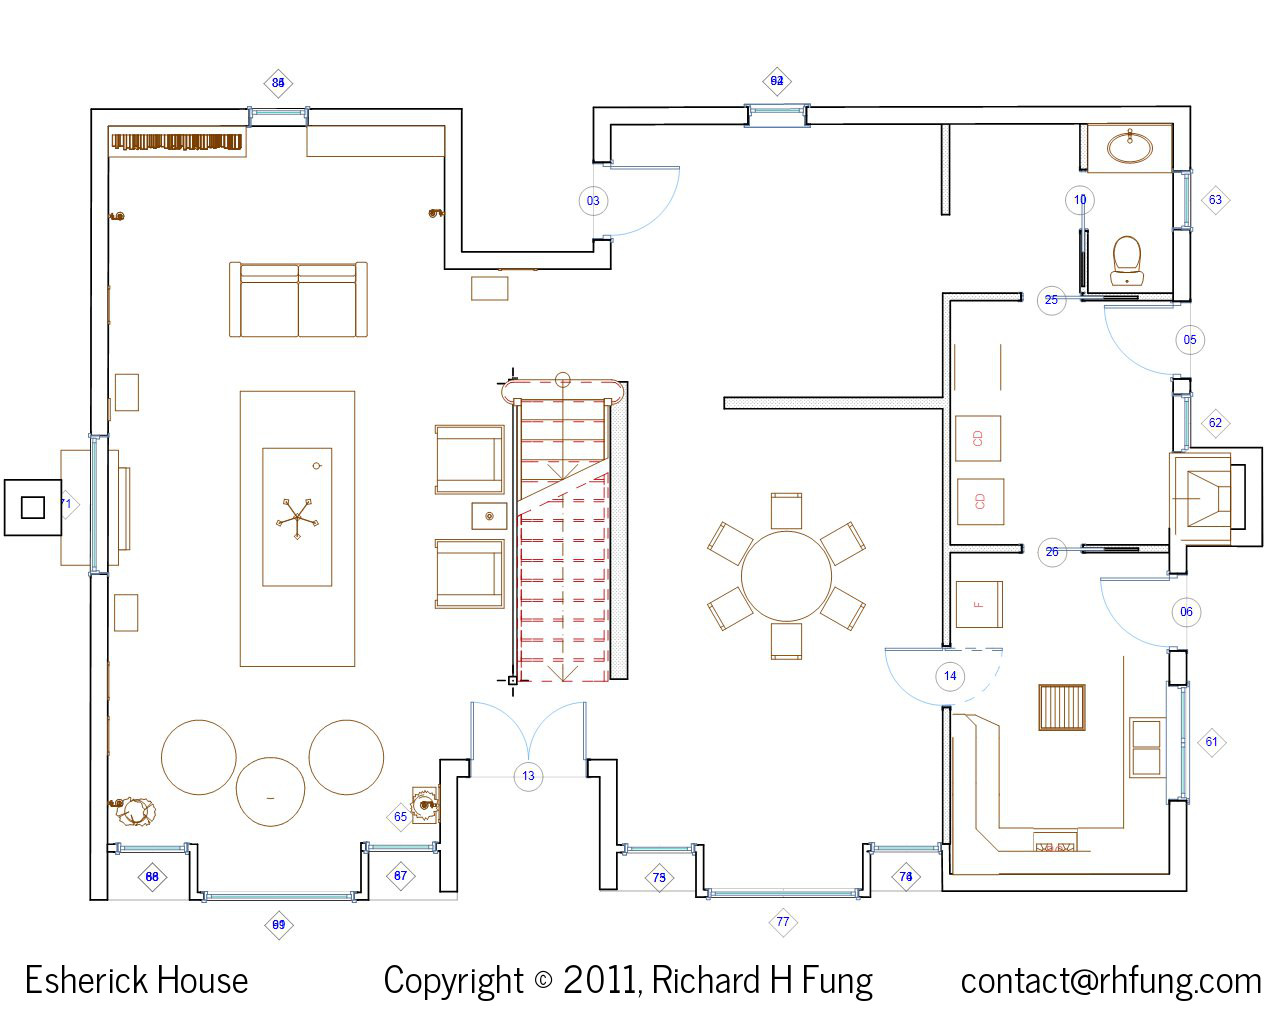 Richard h fung esherick house Home layout planner